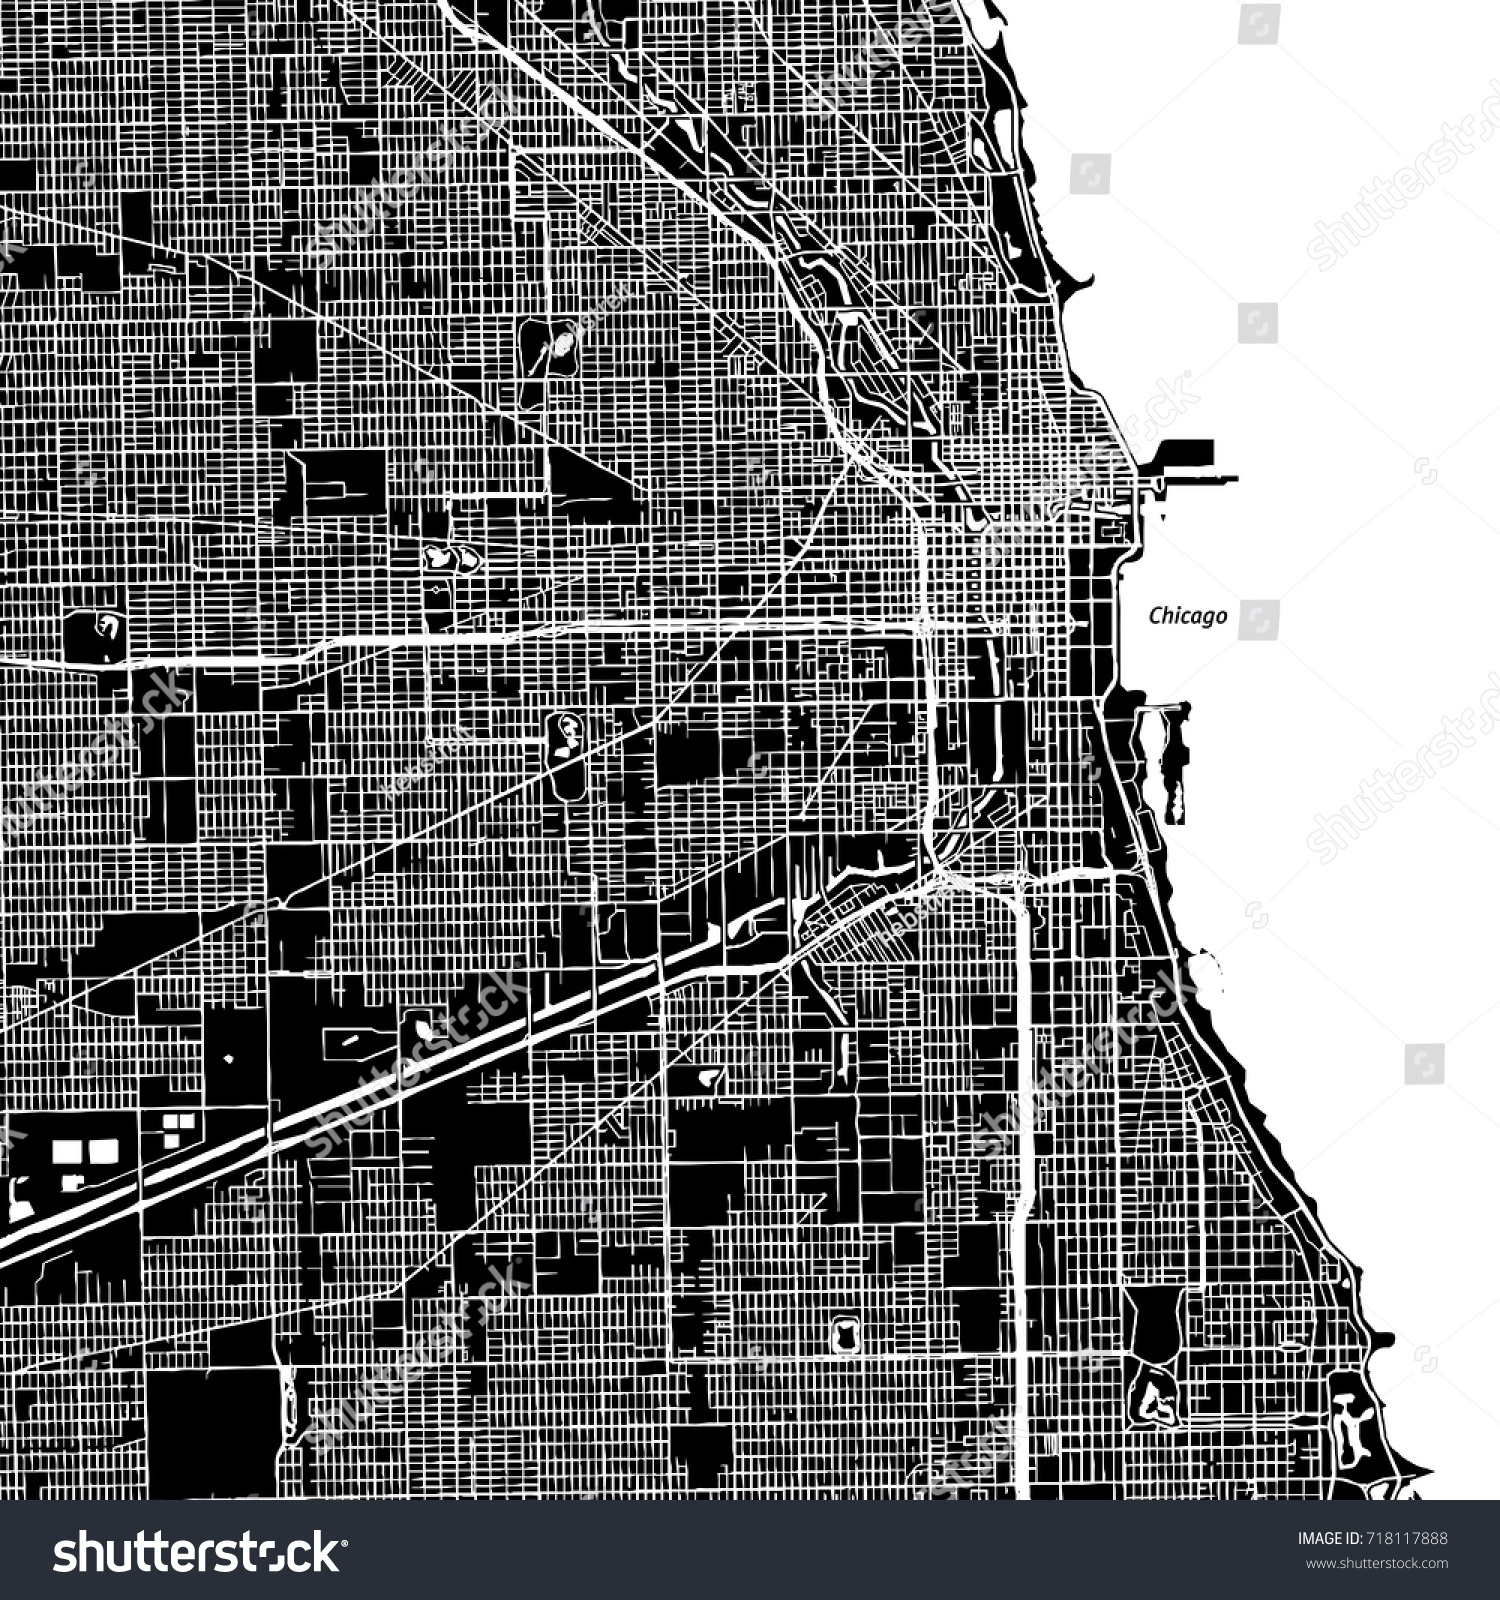 Chicago Illinois Downtown Vector Map City Stock-Vrgrafik ... on